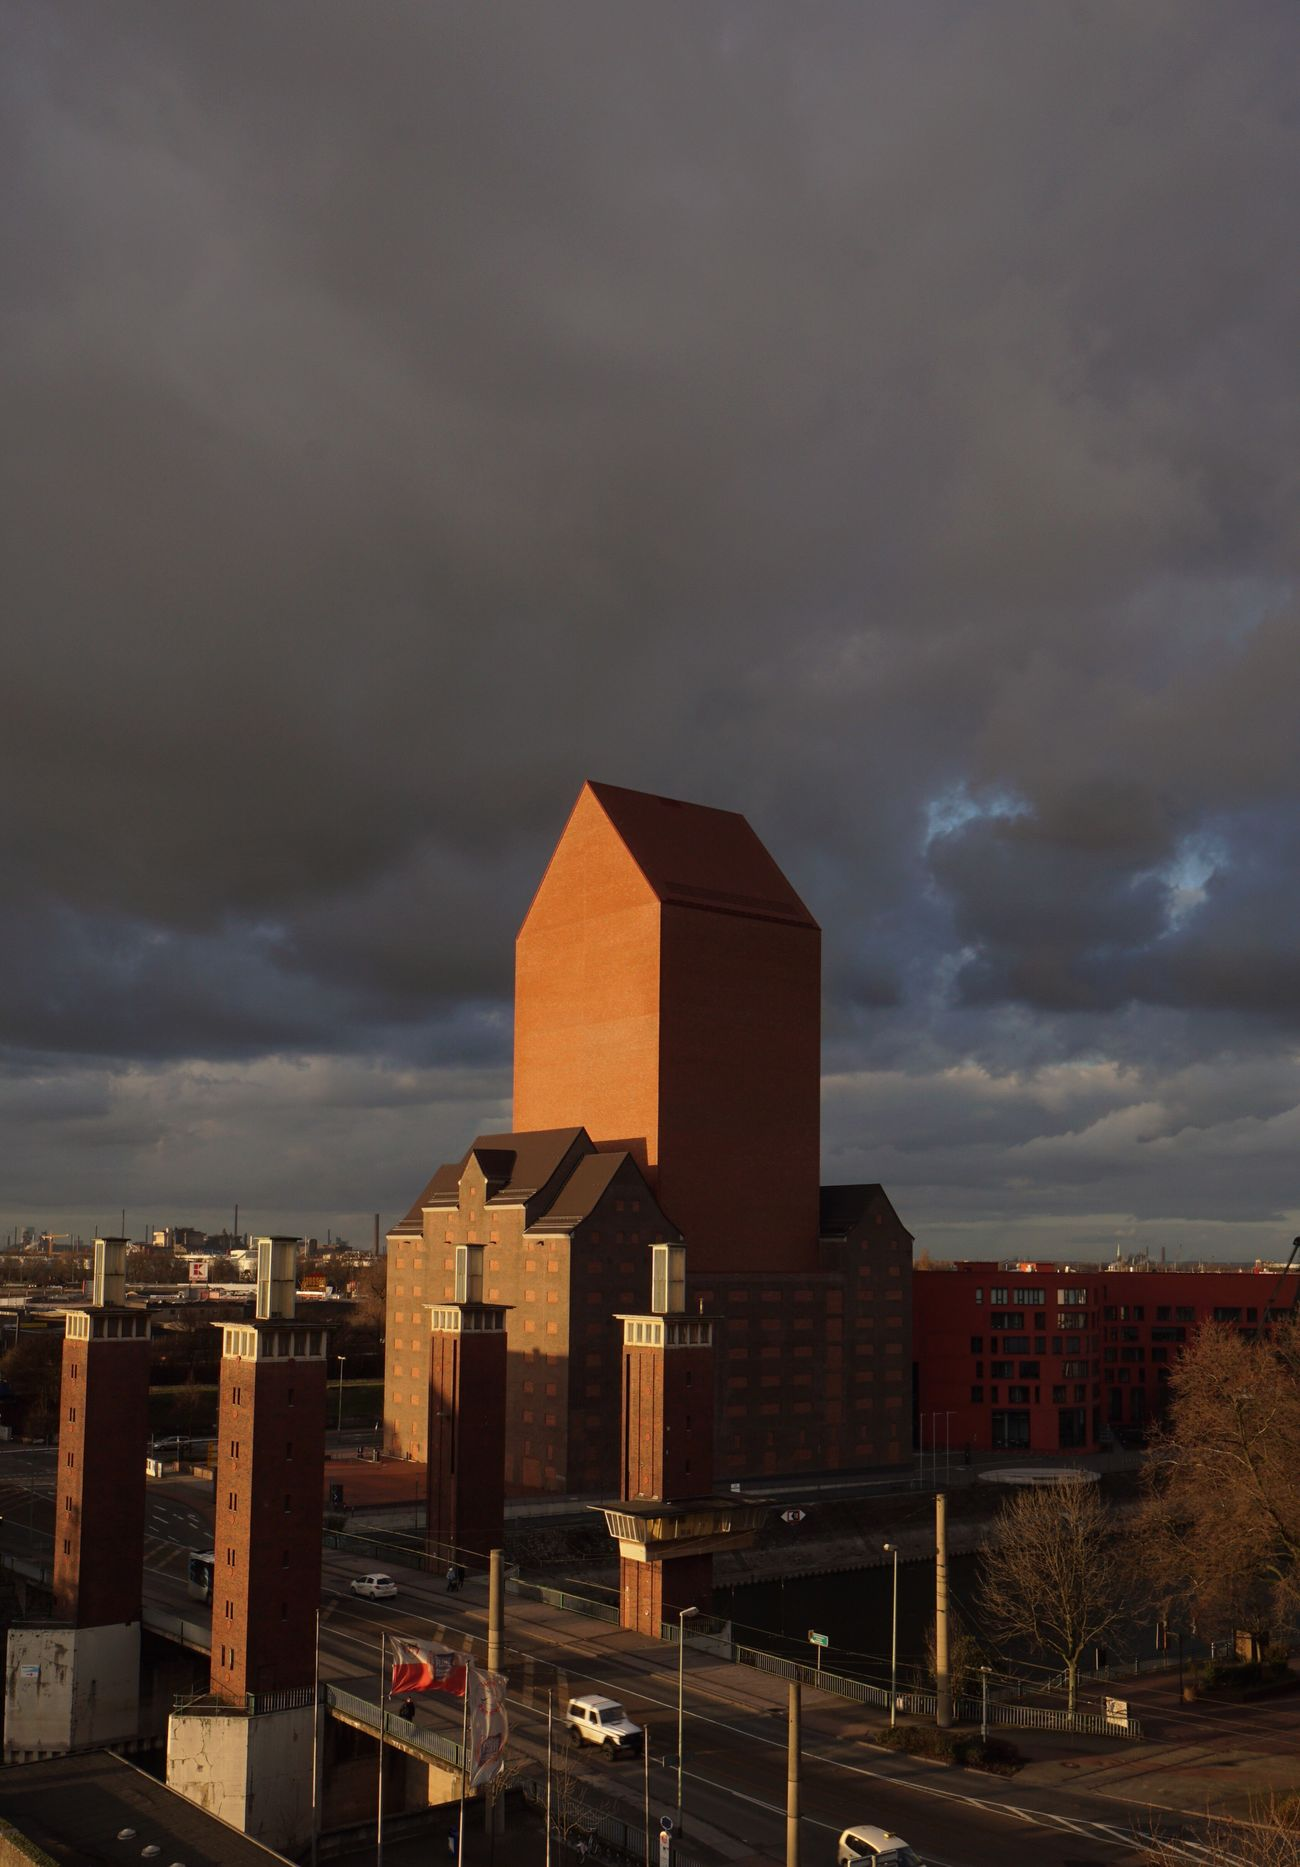 Evening mood ☀️ Architecture Sky Building Exterior Cloud - Sky City No People Built Structure Outdoors Sunset Cityscape Day Dramatic Sky Duisburg Duisburg Innenhafen Brick Brick Wall Brown